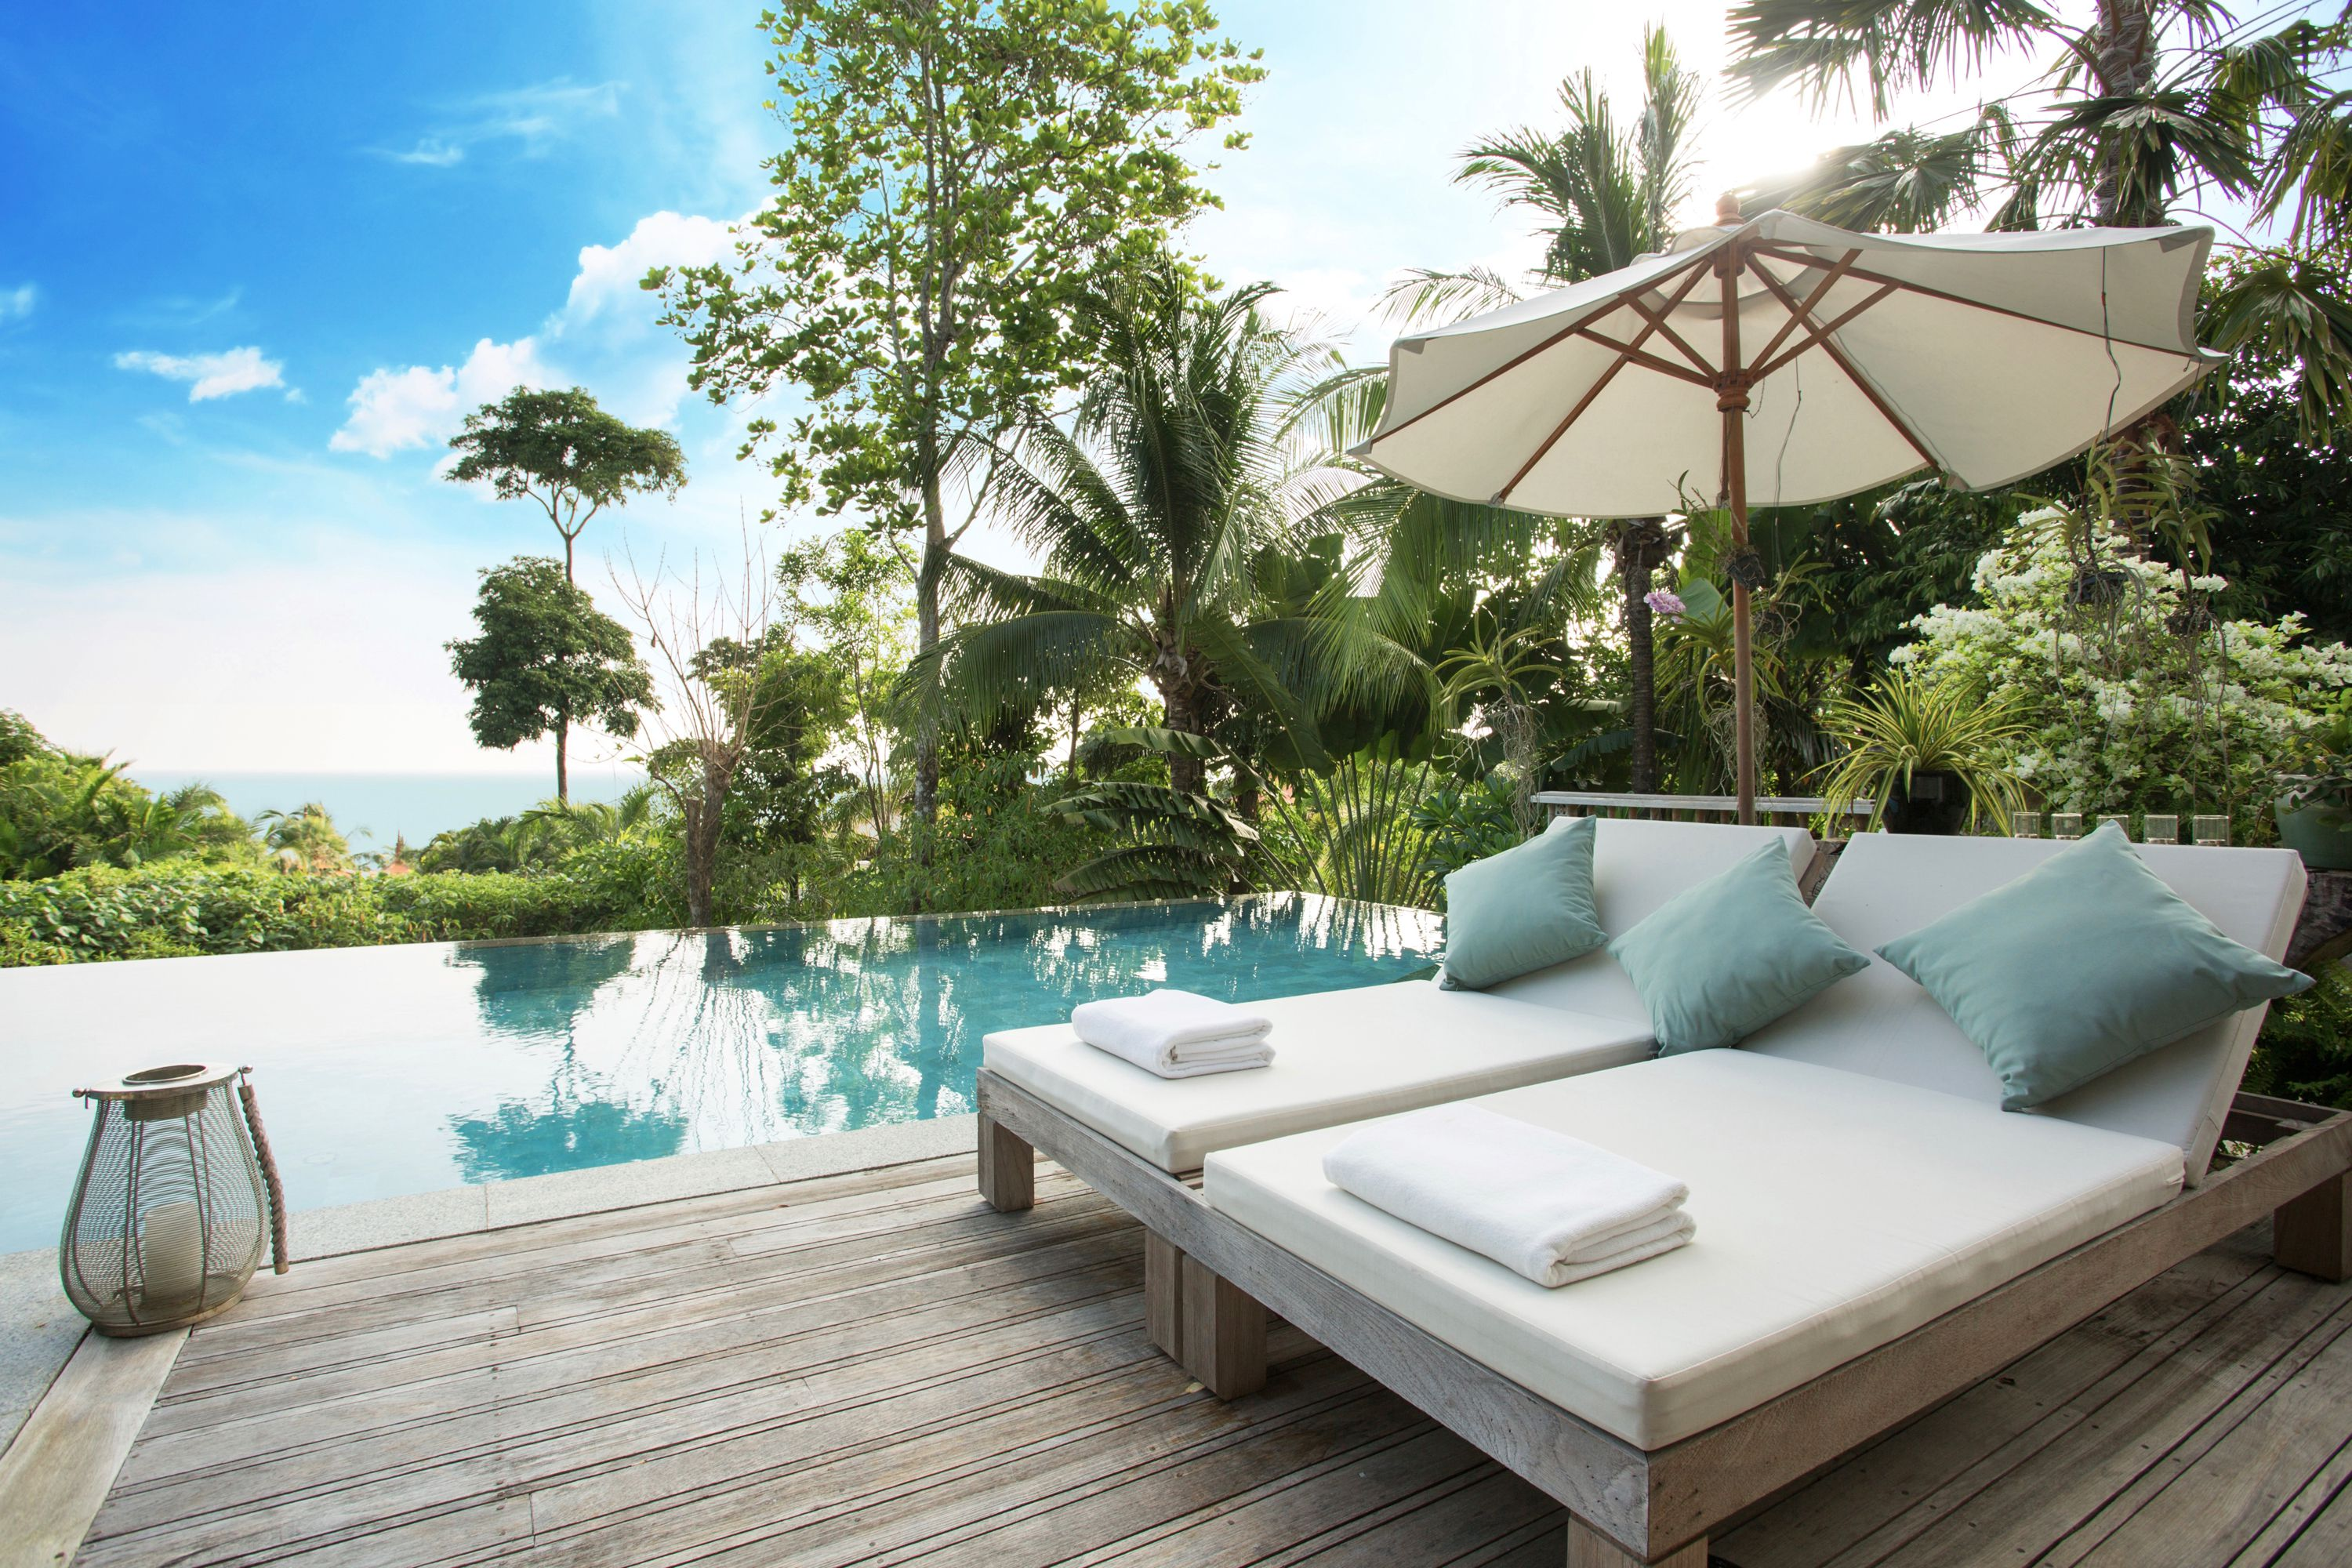 16 Luxury Pubg Wallpaper Iphone 6: Best Hotels And Resorts All Over Thailand